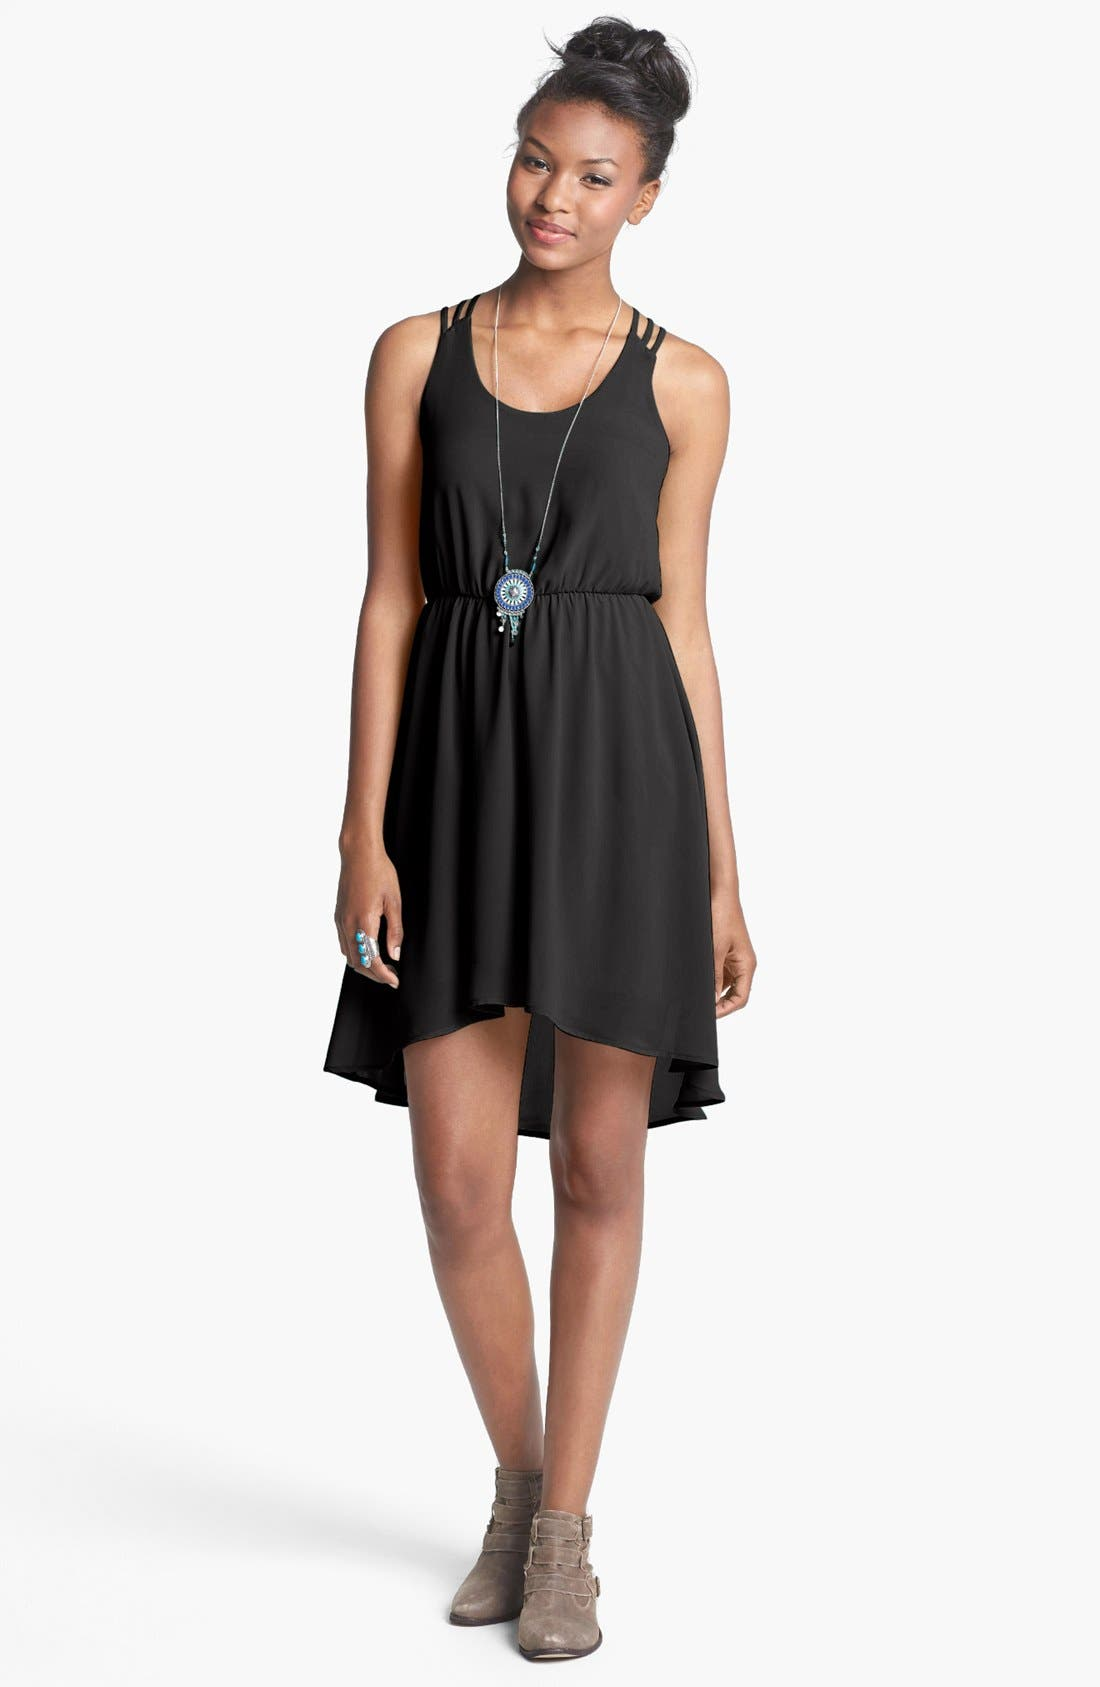 Alternate Image 1 Selected - Lush Strappy High/Low Dress (Juniors)